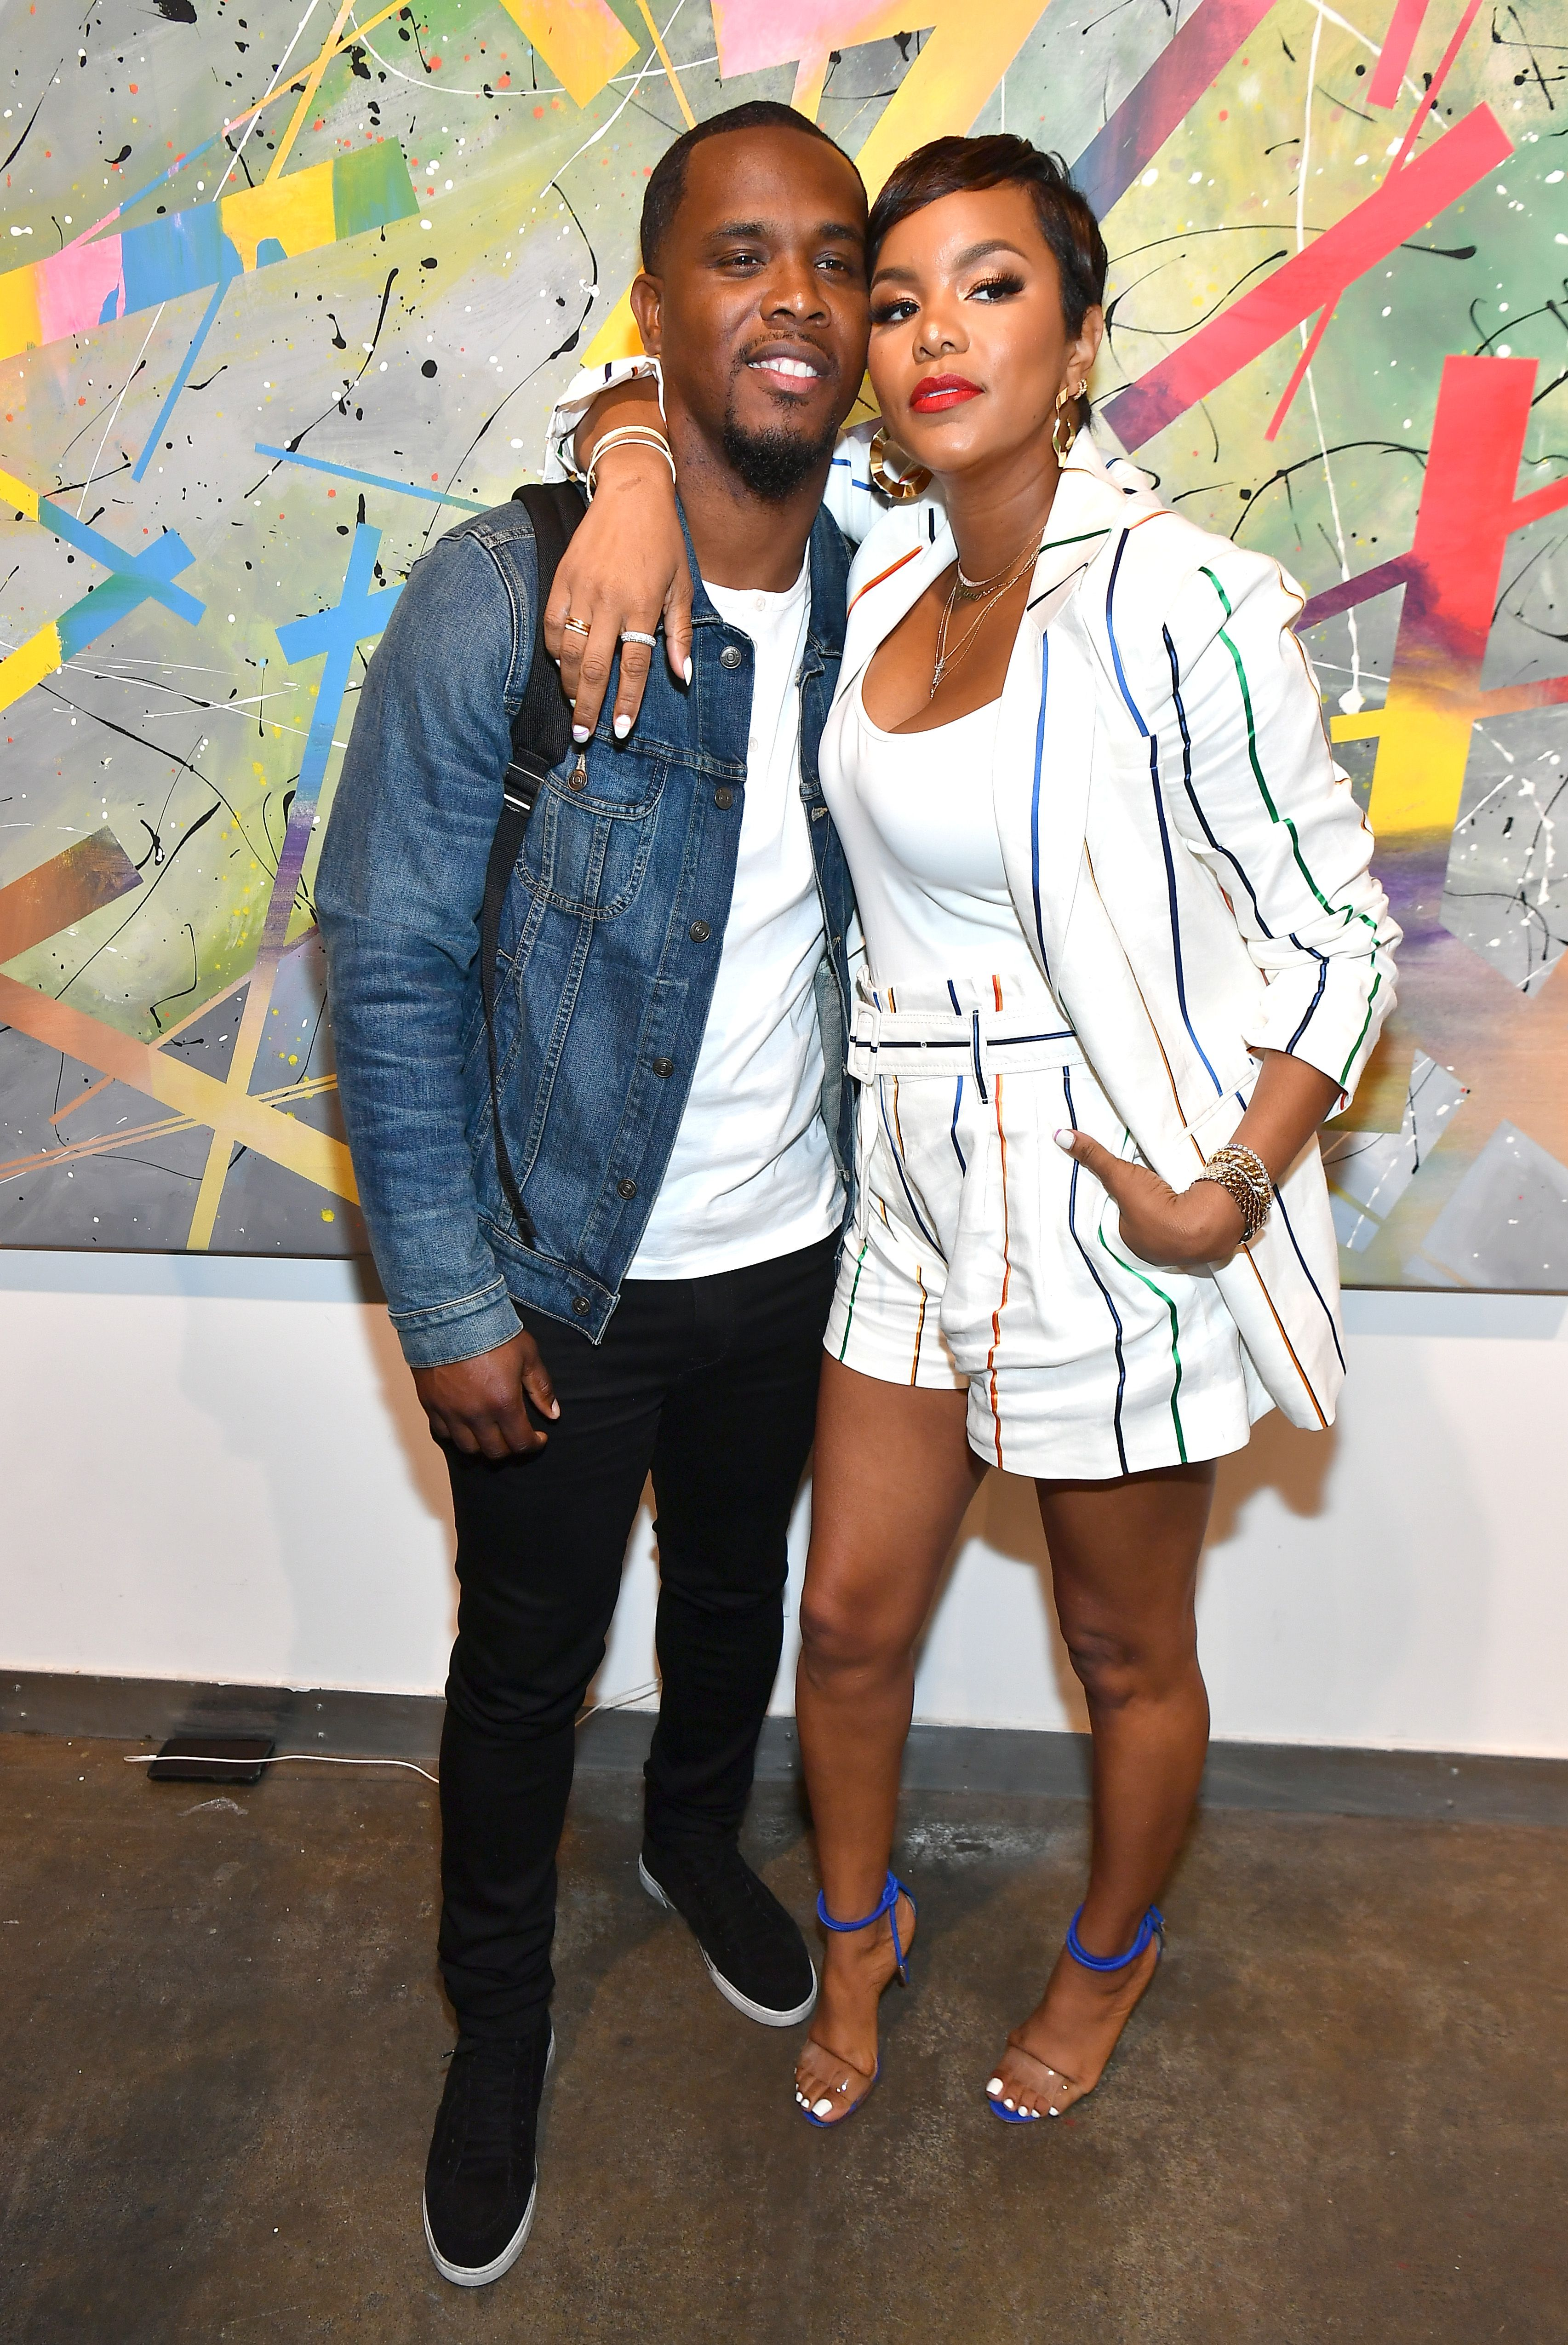 Tommicus Walker and LeToya Luckett Walker during the 2019 Black Love Summit at Mason Fine Art Gallery on July 20, 2019. | Source: Getty Images